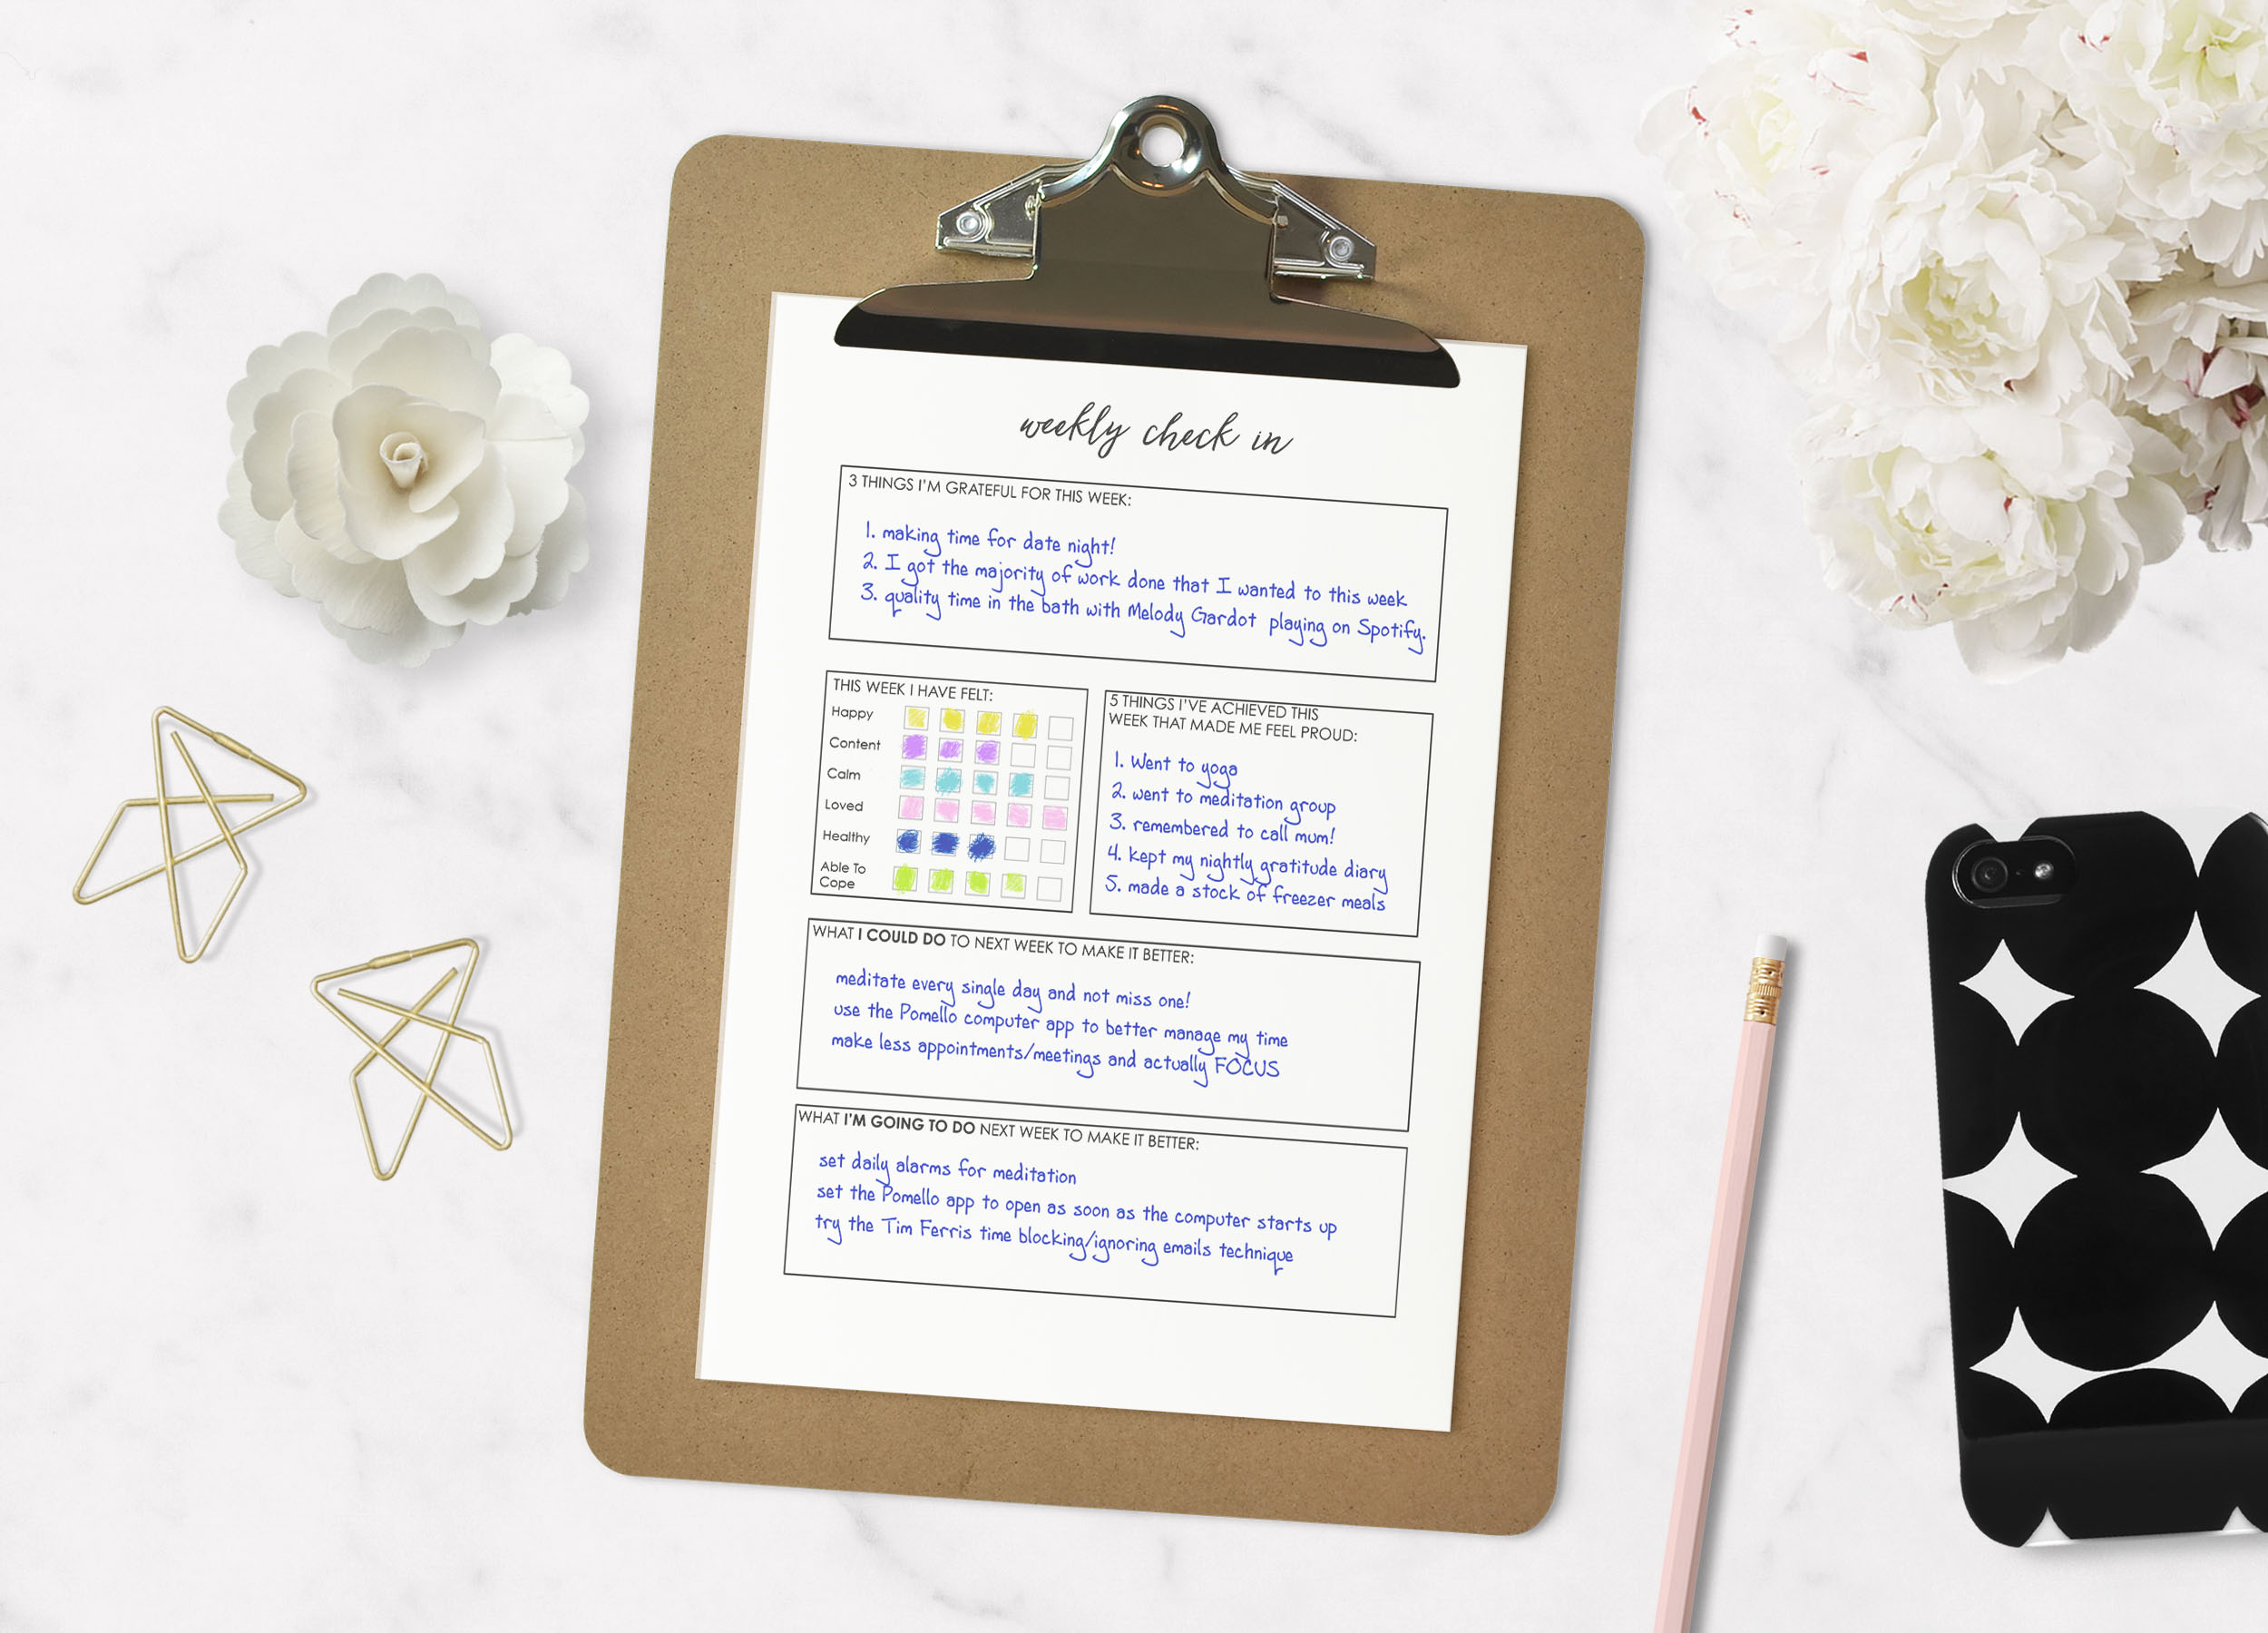 Weekly Check in - Creative hapy life planner